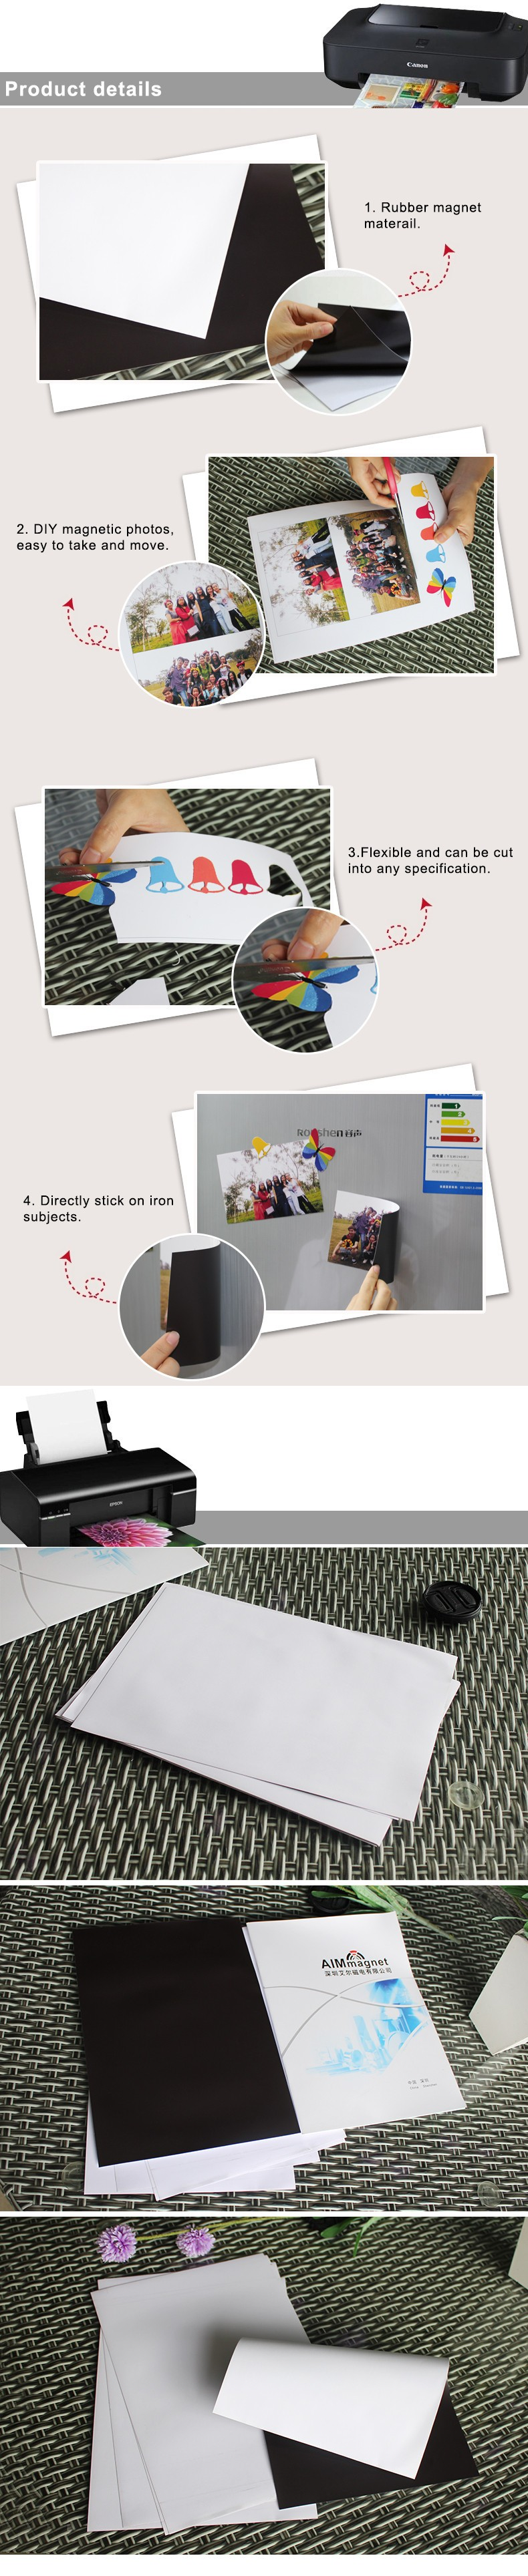 magnetic photo paper